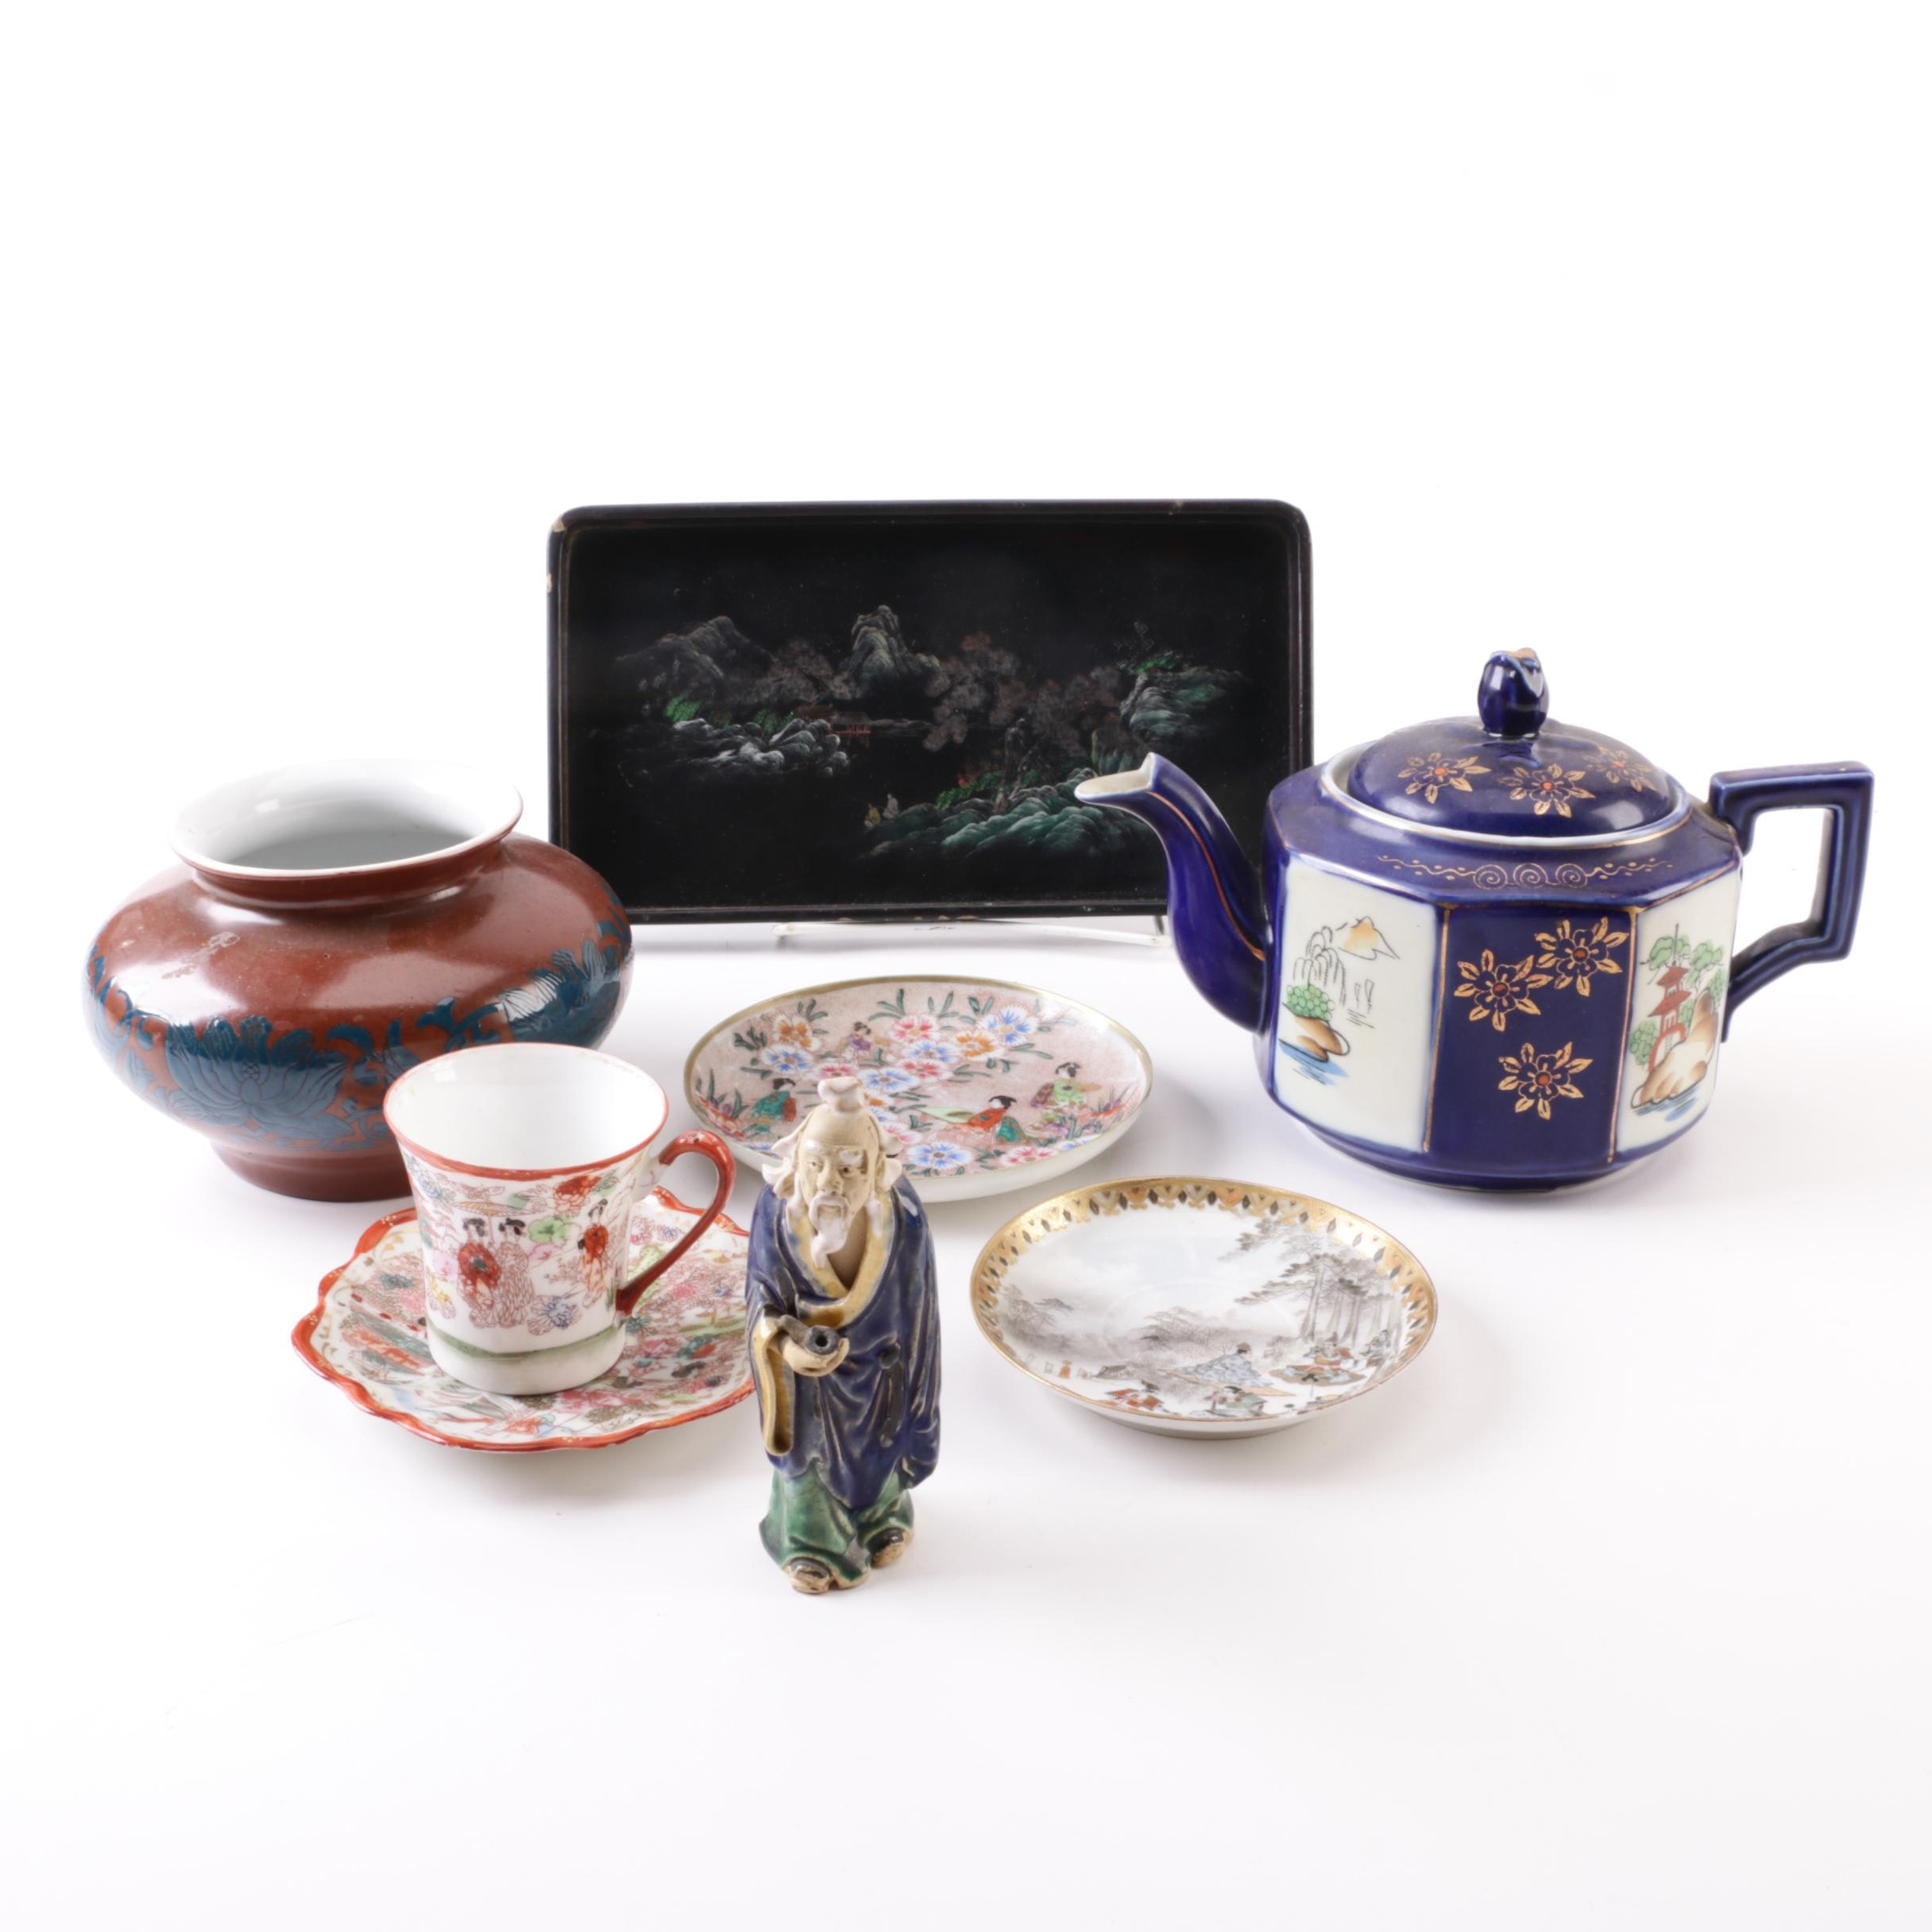 Japanese and Chinese Porcelain and Ceramic Decor